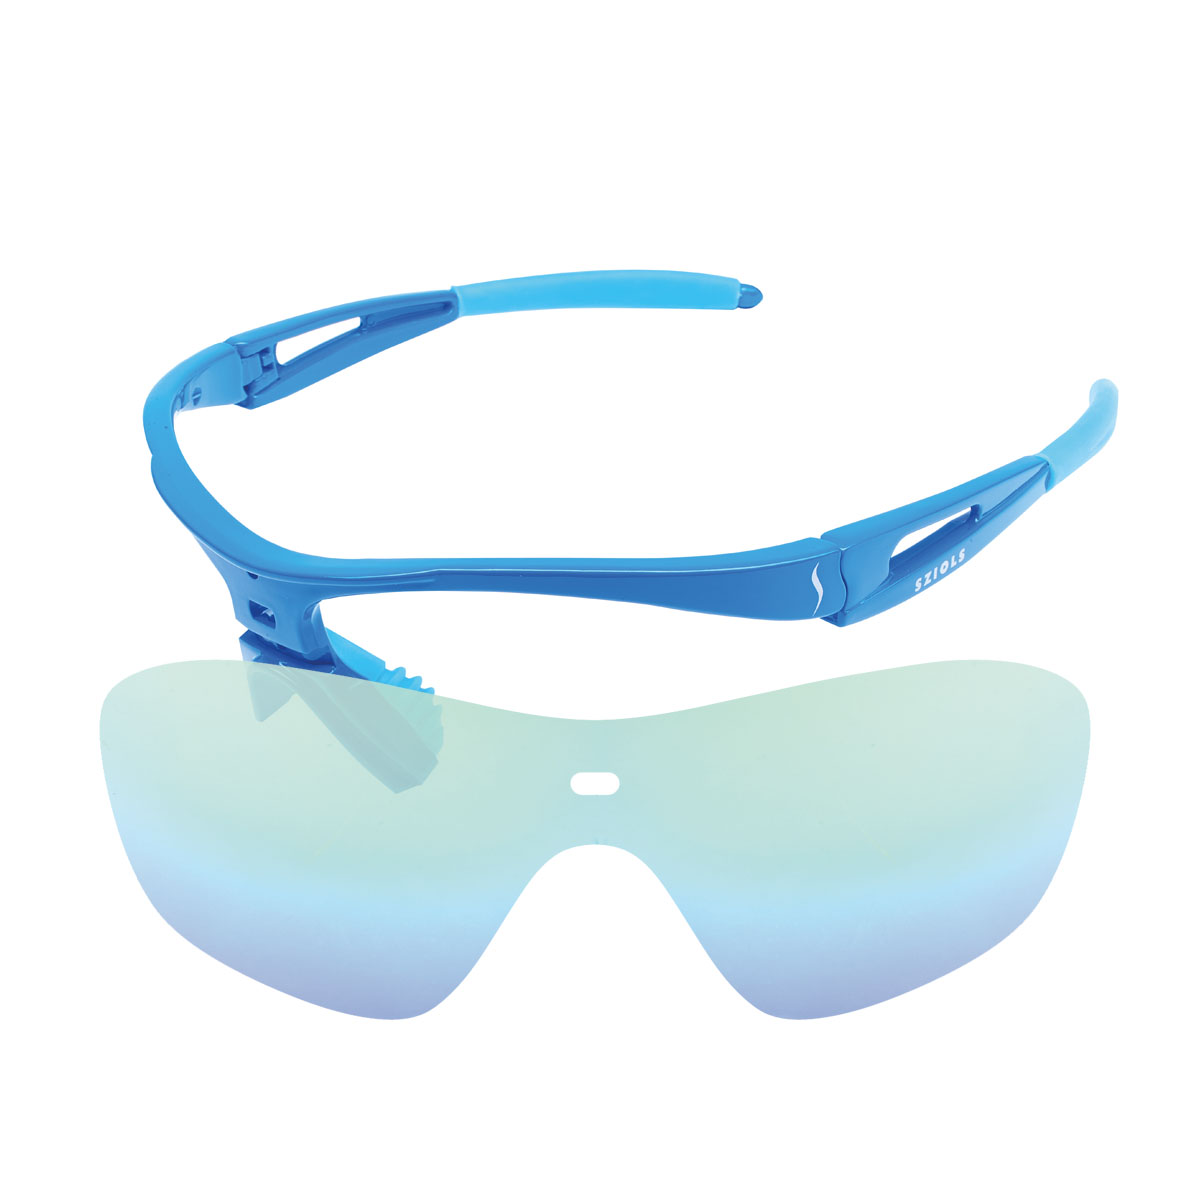 X-Kross Lifestyle - Sziols - shiny blue - mls49223